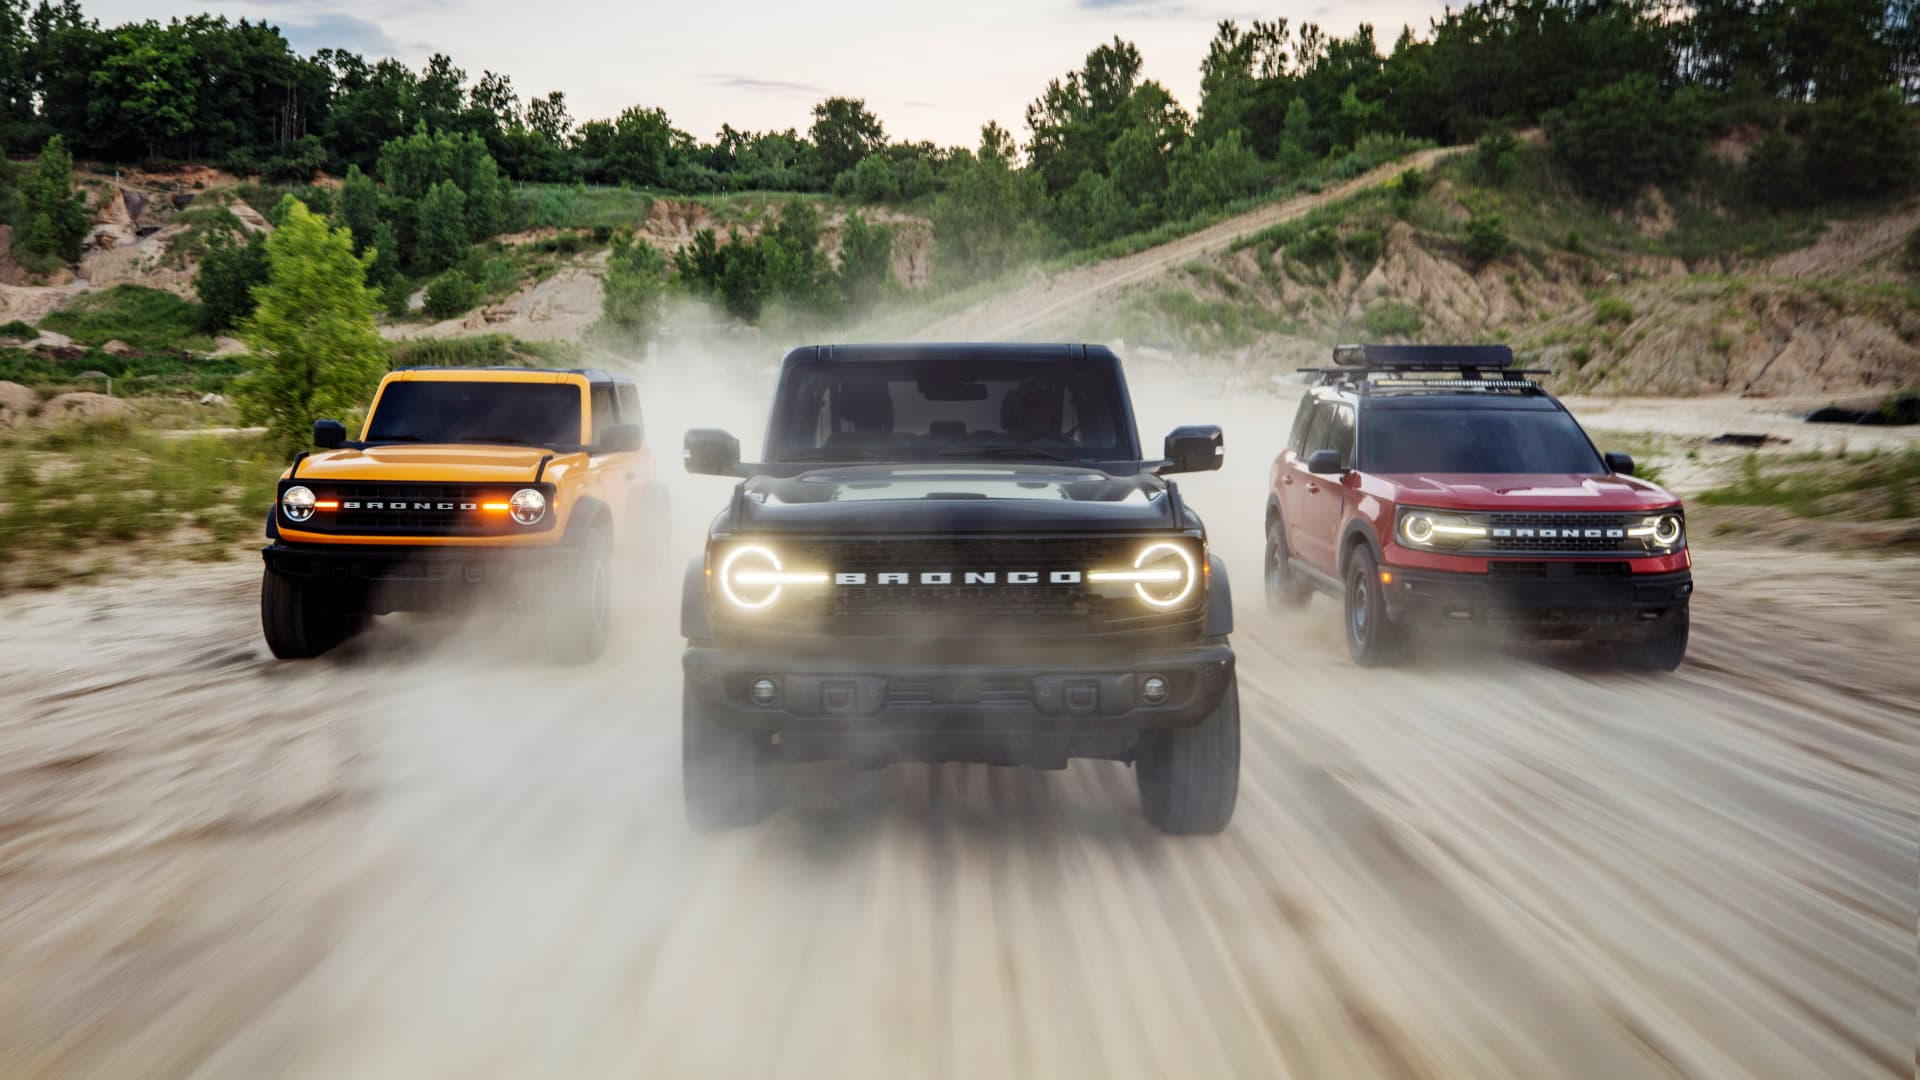 The new 2021 Bronco family of SUVs include the Bronco two-door, Bronco four-door and Bronco Sport (left to right).